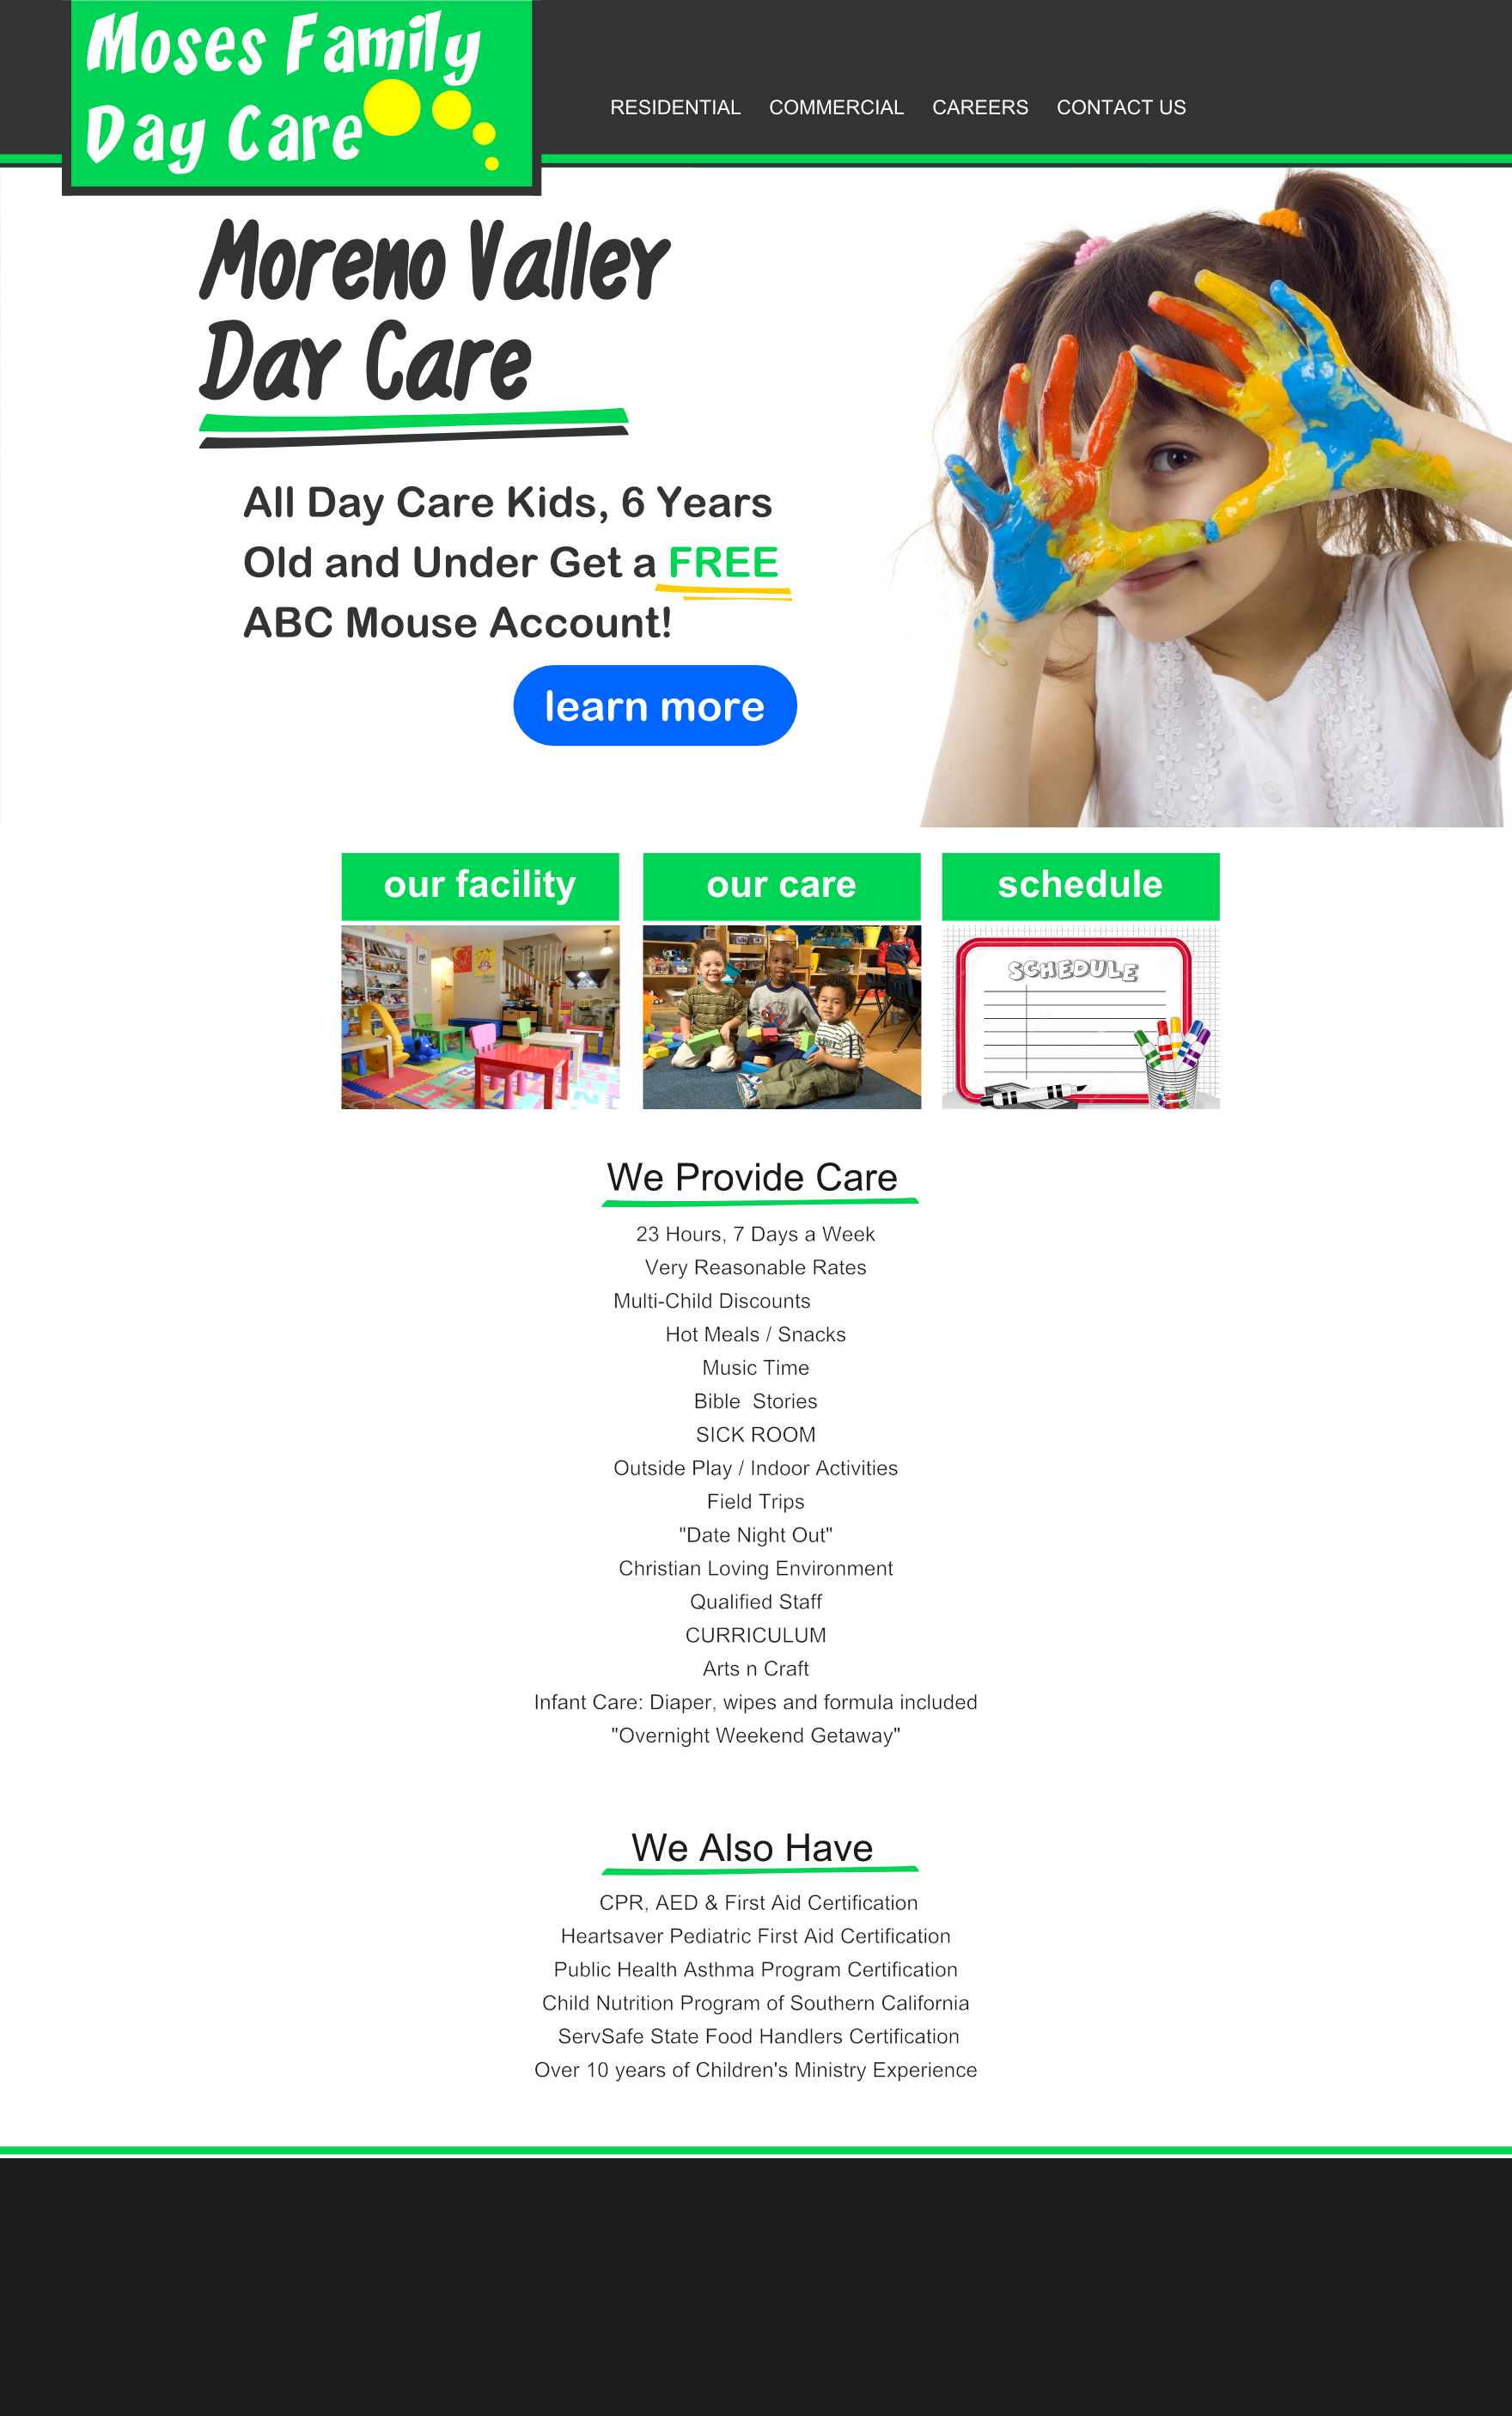 Moses Day Care 702 Pros Web Design Mockup Web Design News Website Design